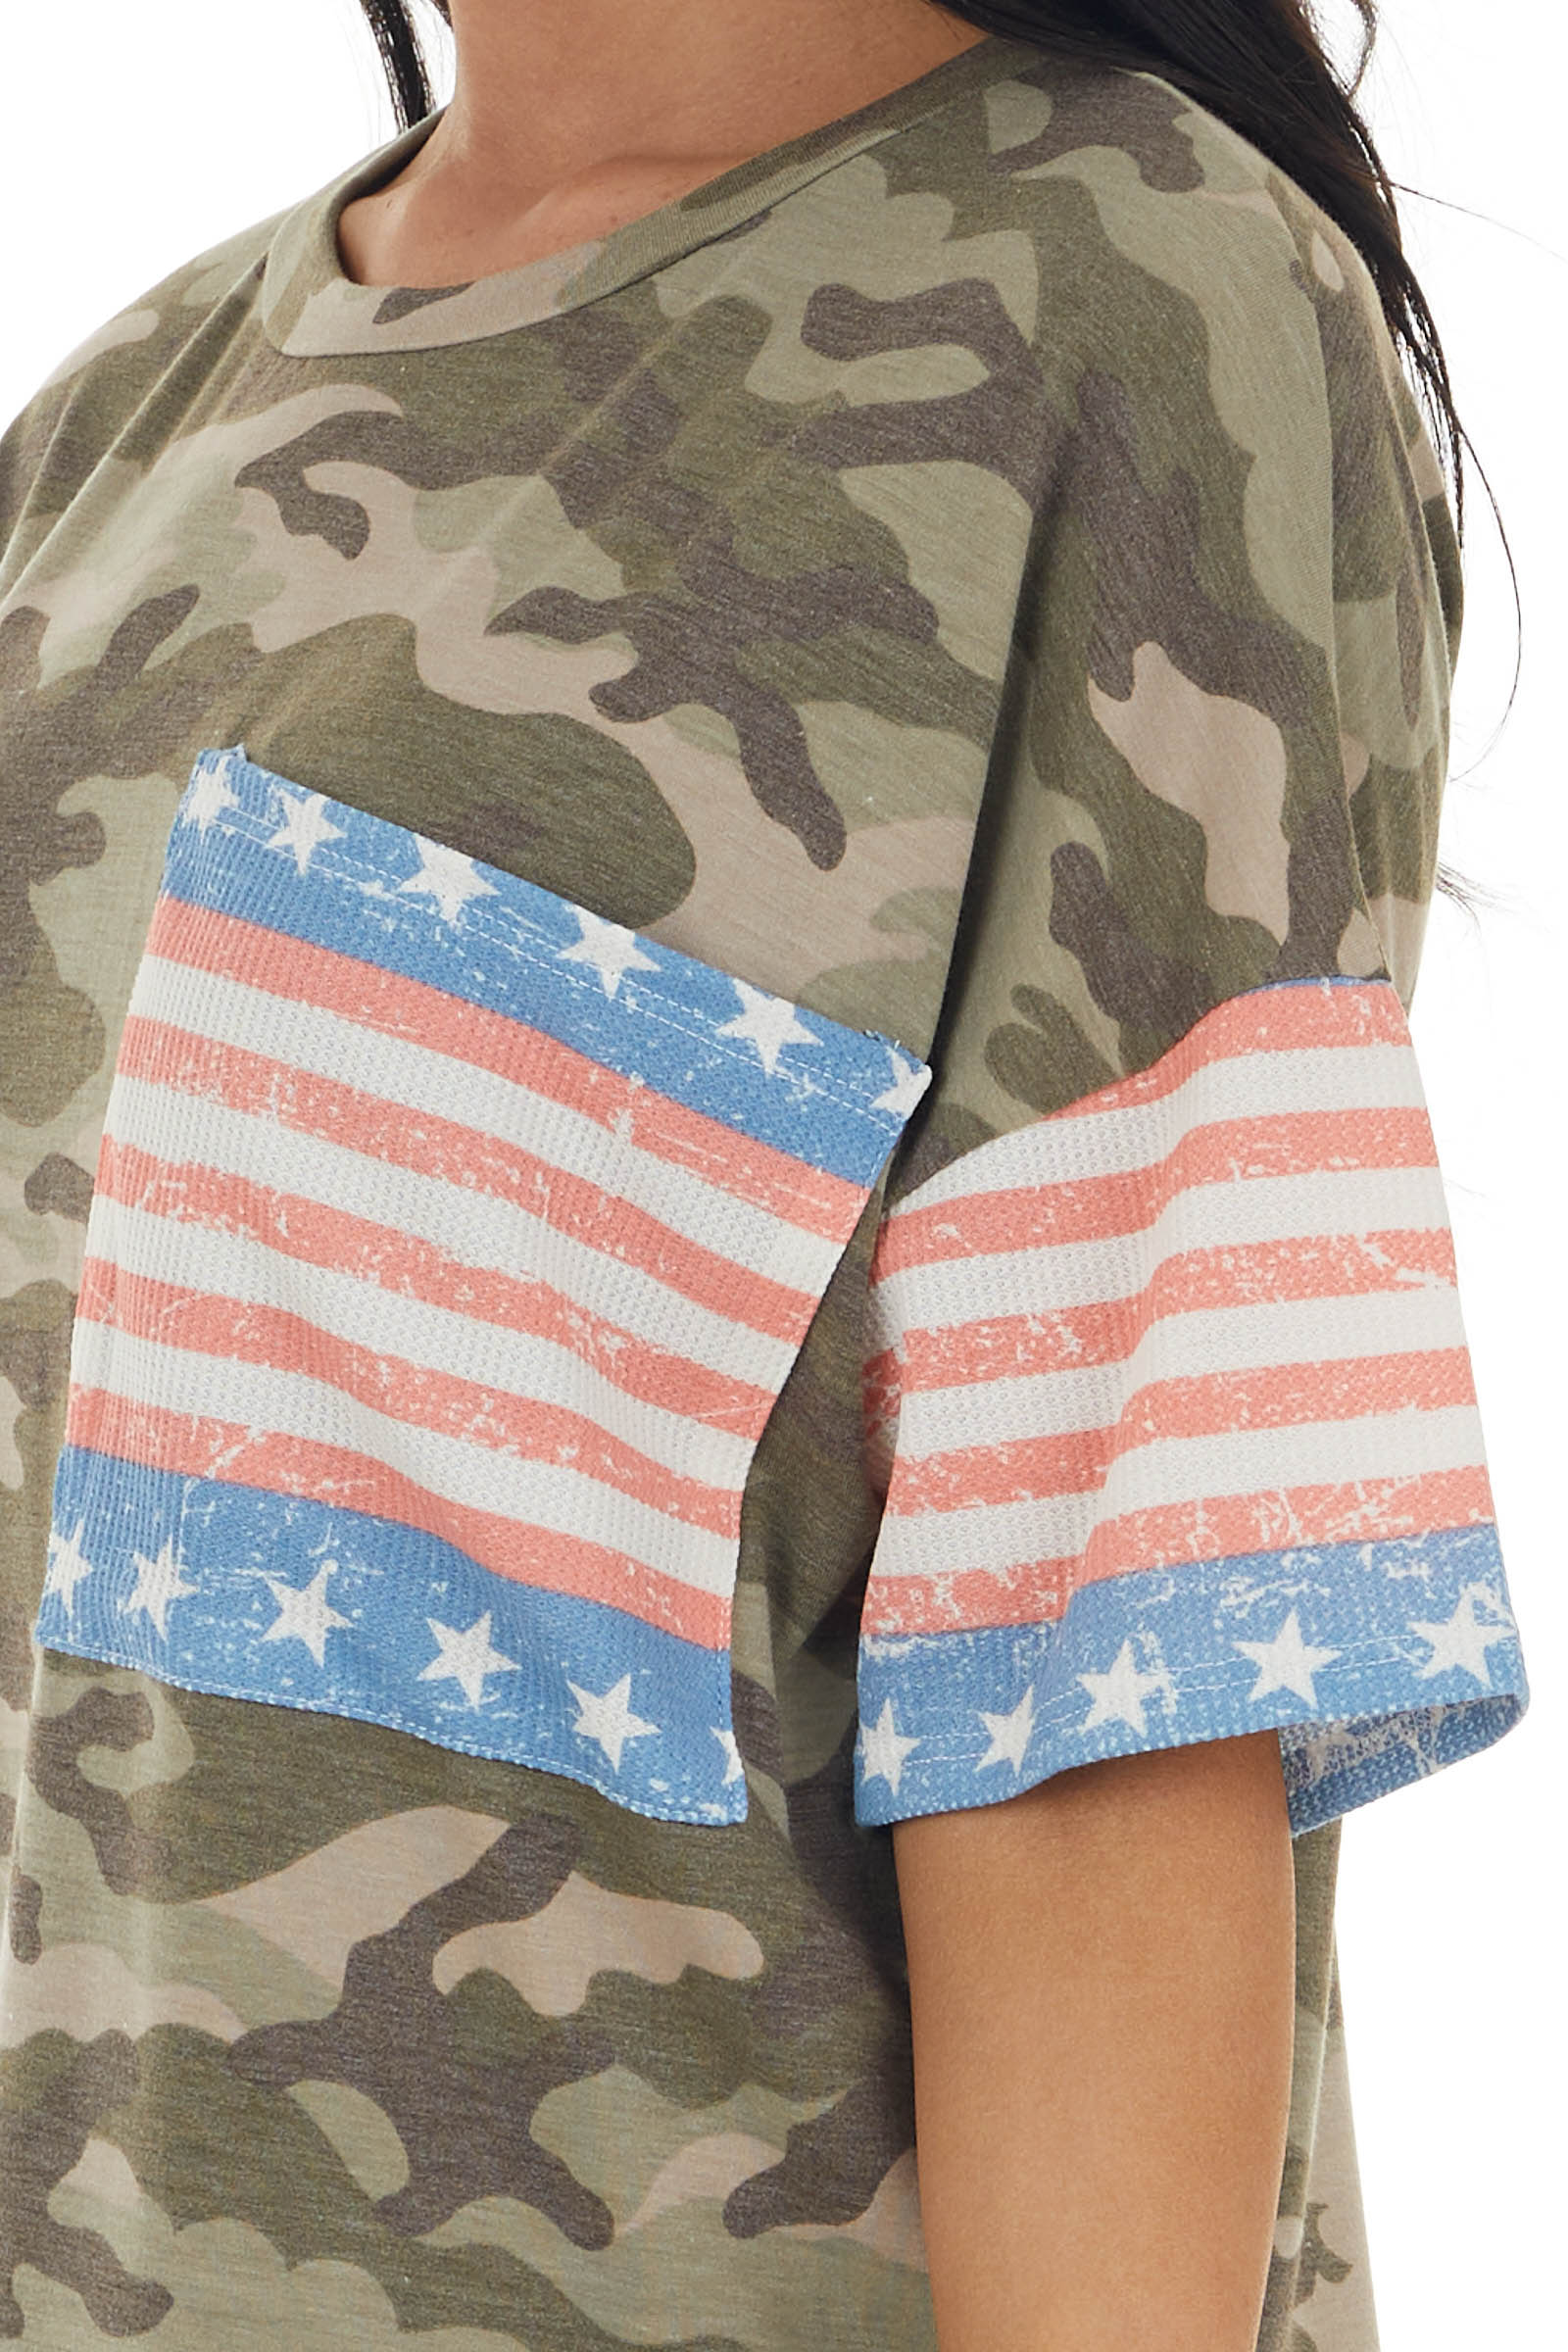 Camo Print Short Sleeve Knit Top with American Flag Contrast